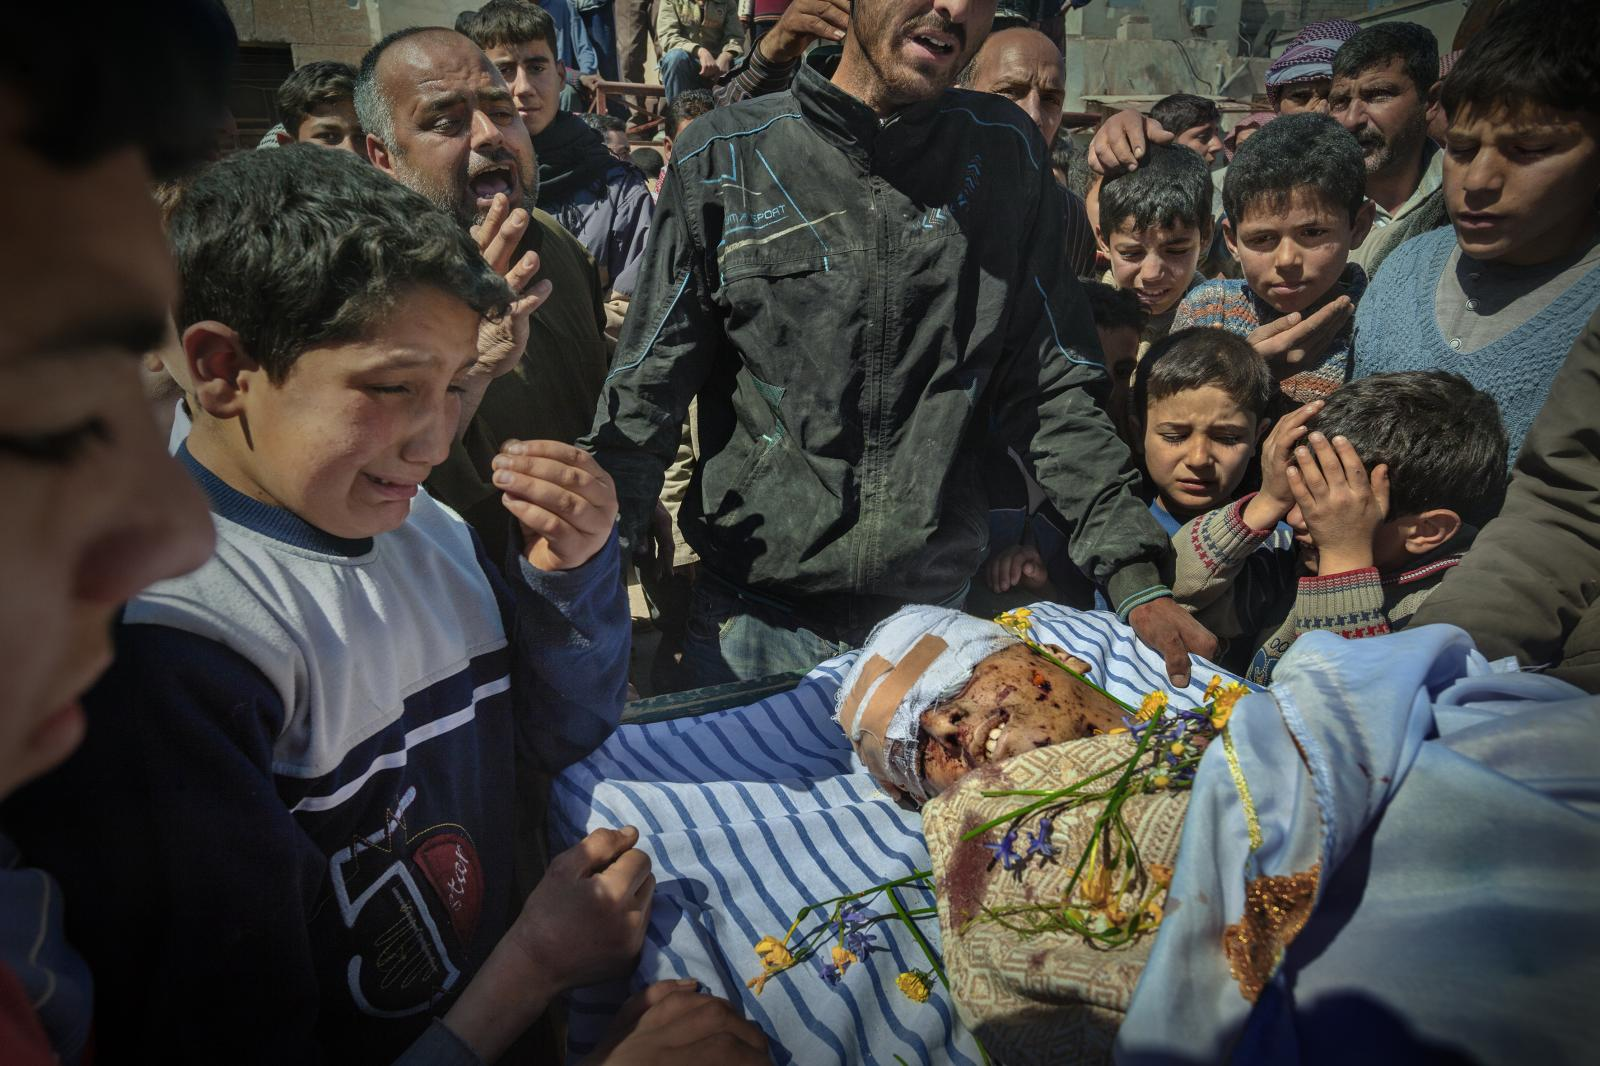 Ahmad Benmushen Qaruosh , 13 years old , died Thursday from the bombing b y Assad ' s troops in Sermen , Idlib province . Shrapnel from a tank shell riddled his body.His grief-stricken brother weeps alongside him (Syria,2012)